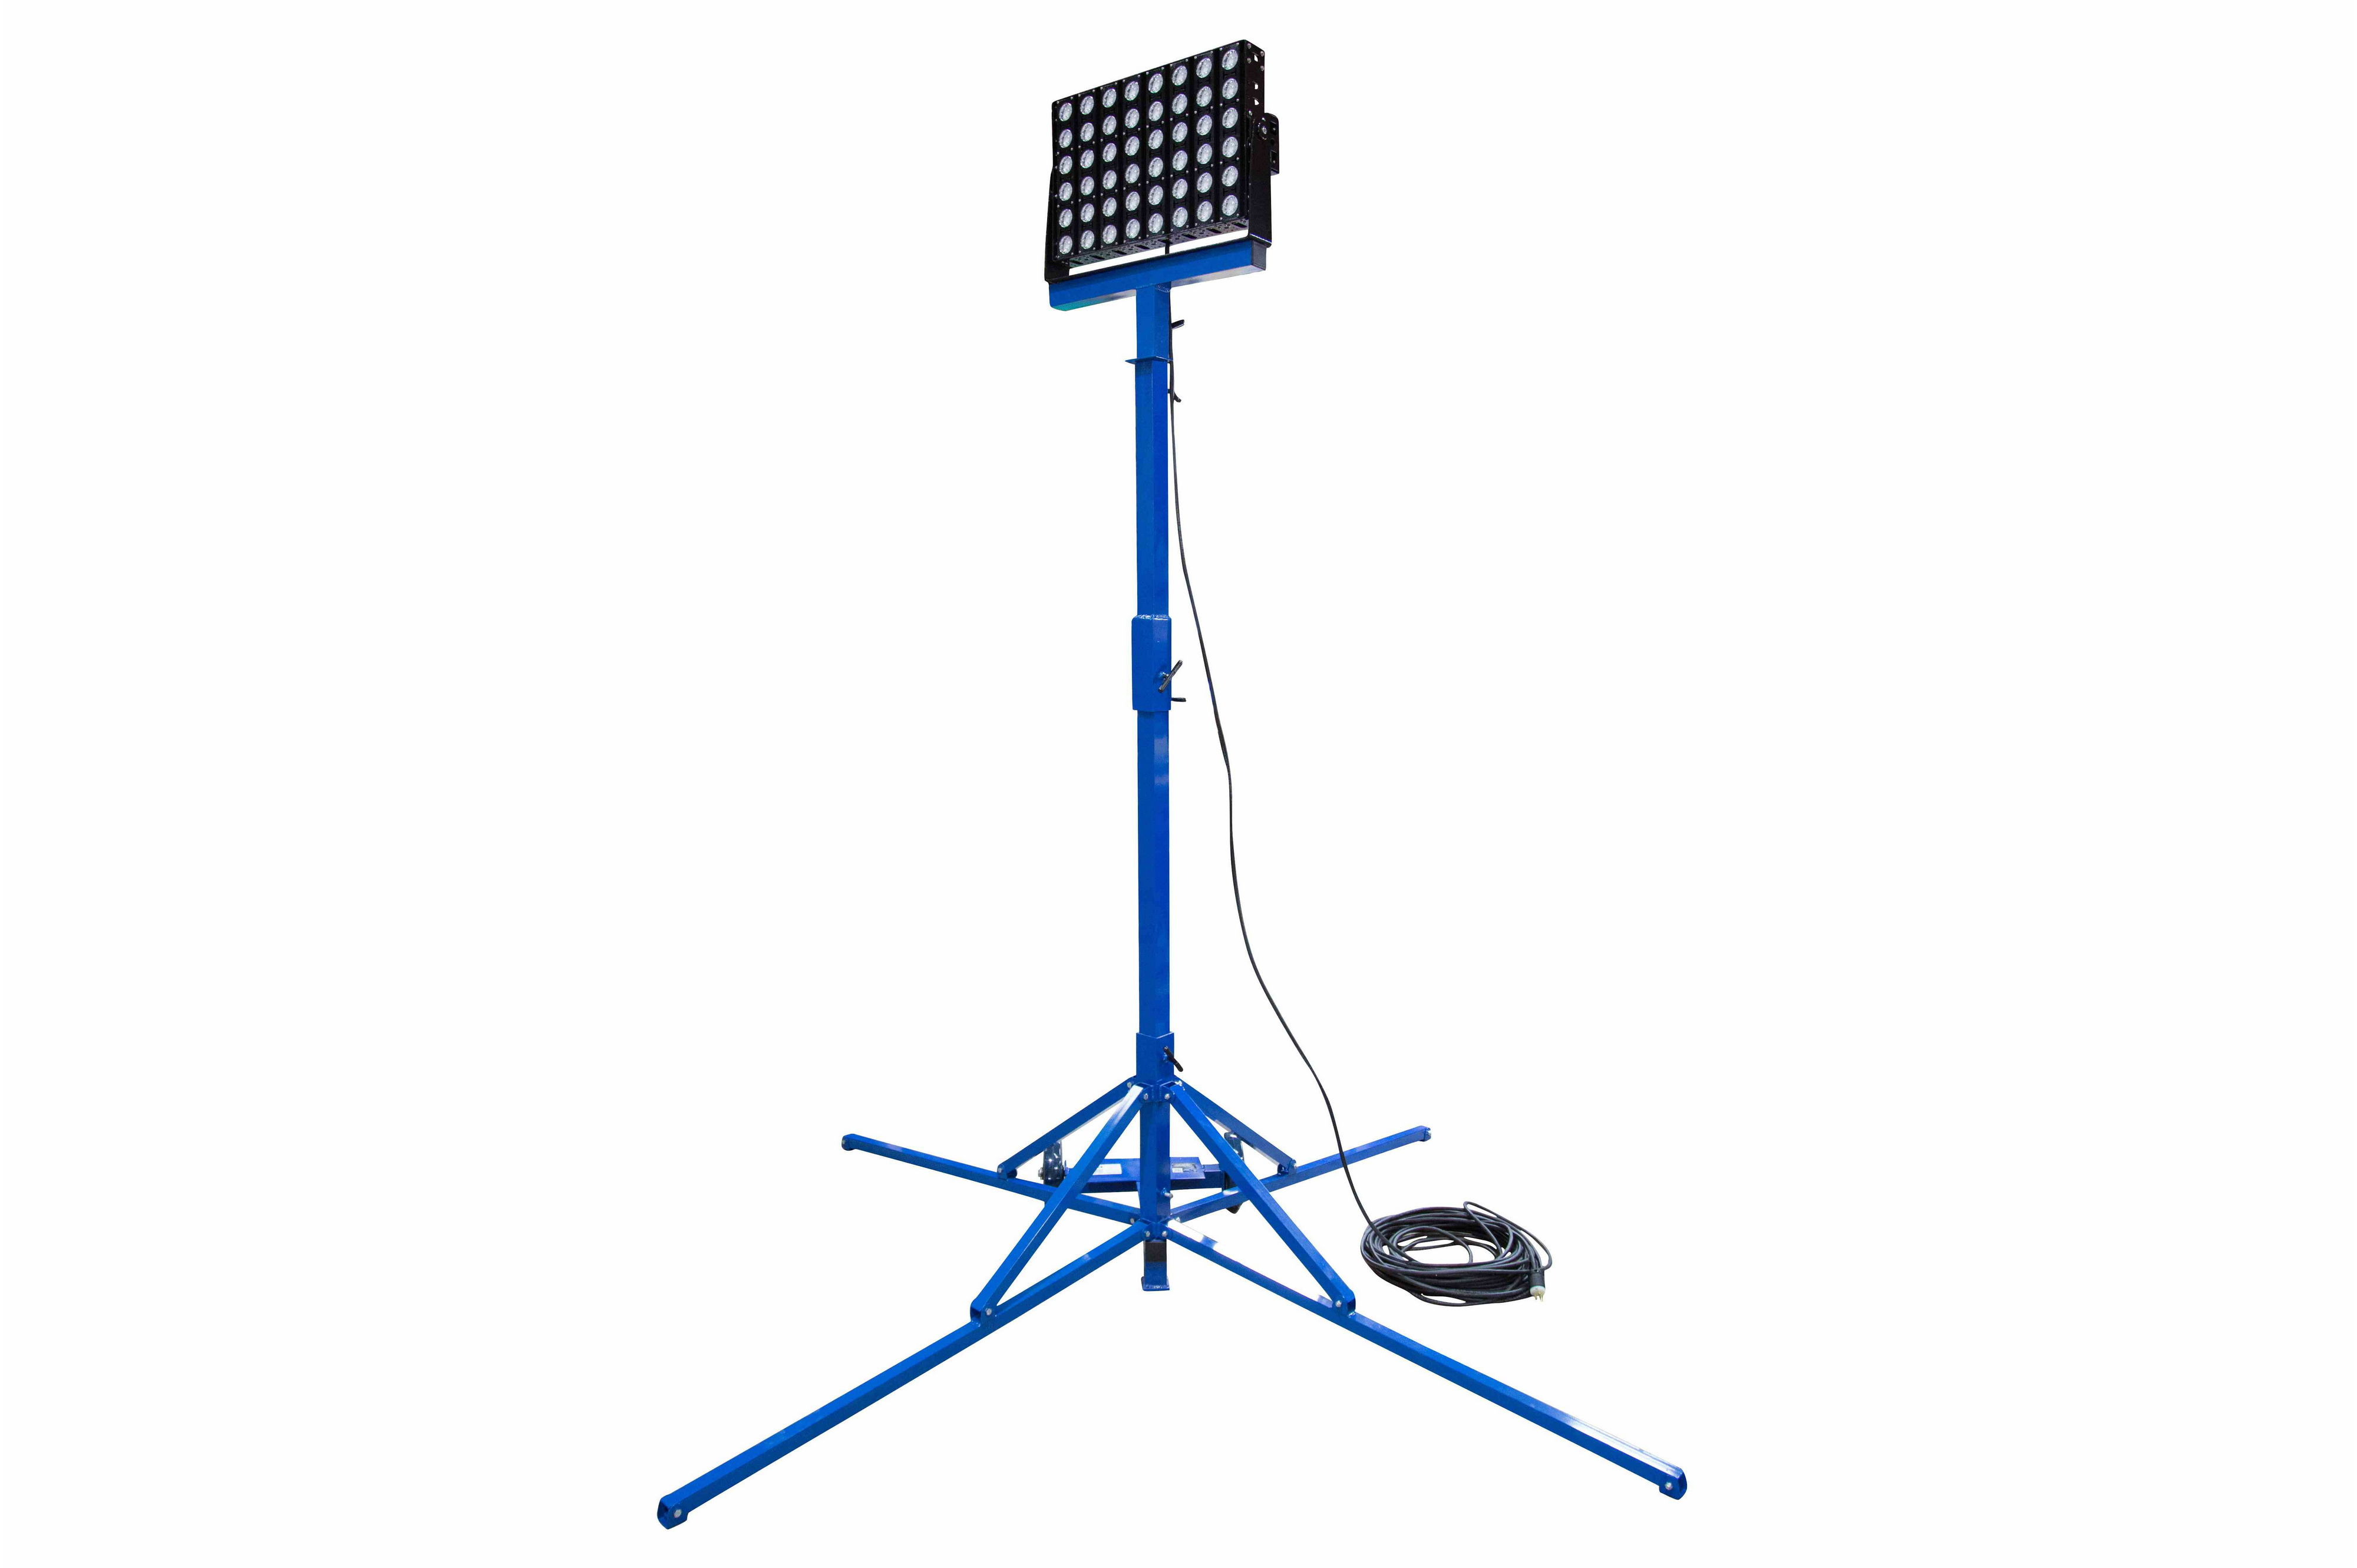 500 Watt Work Area Led Light Tower